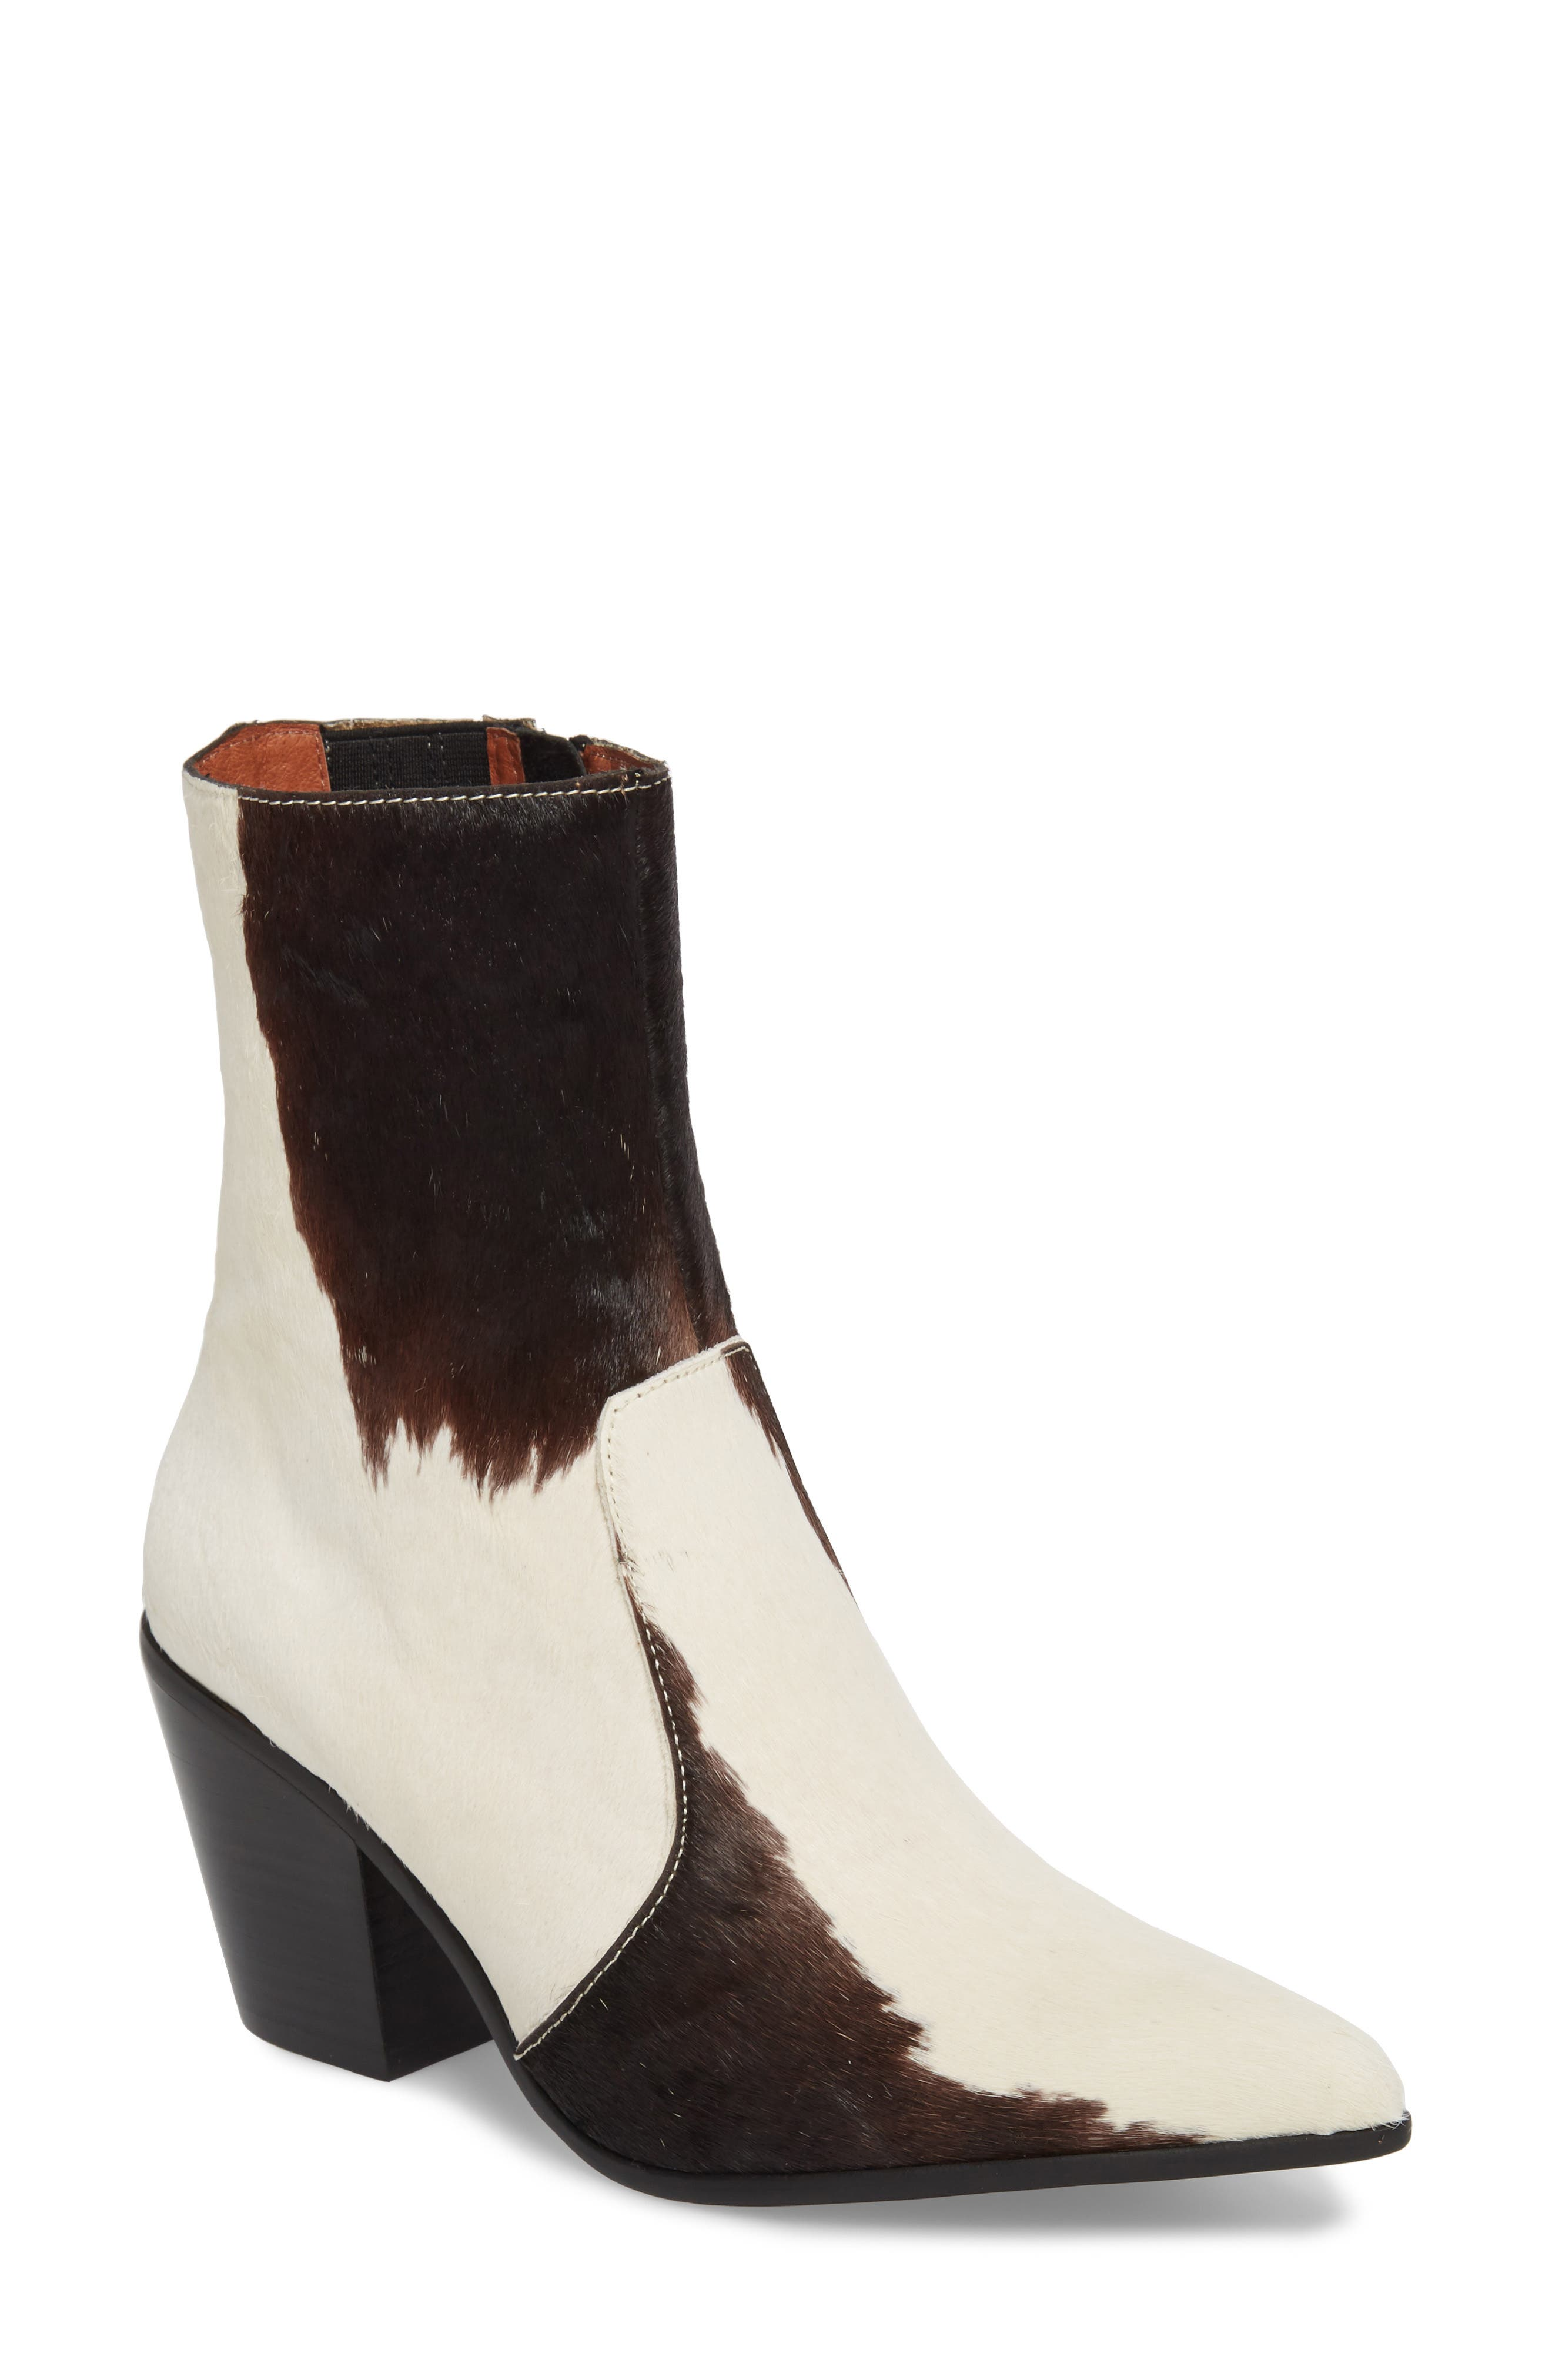 Main Image - Jeffrey Campbell Ace-F Genuine Calf Hair Bootie (Women)